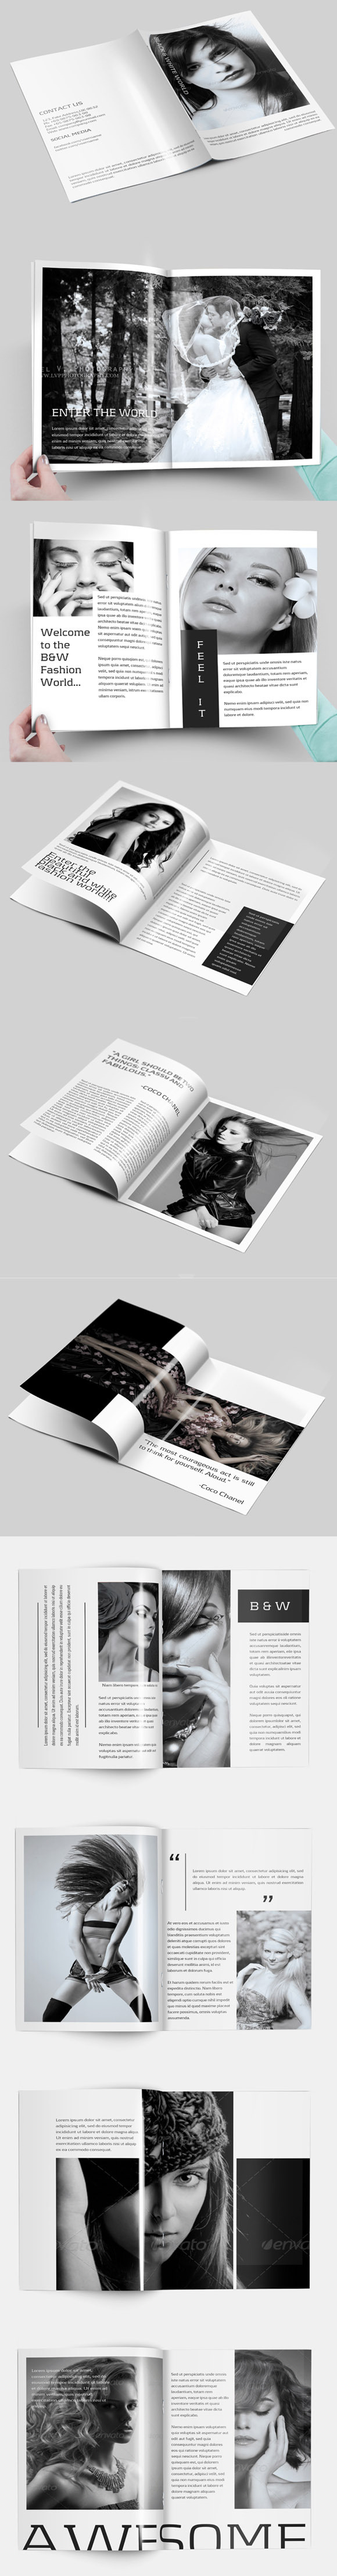 B W Brochure For Photography